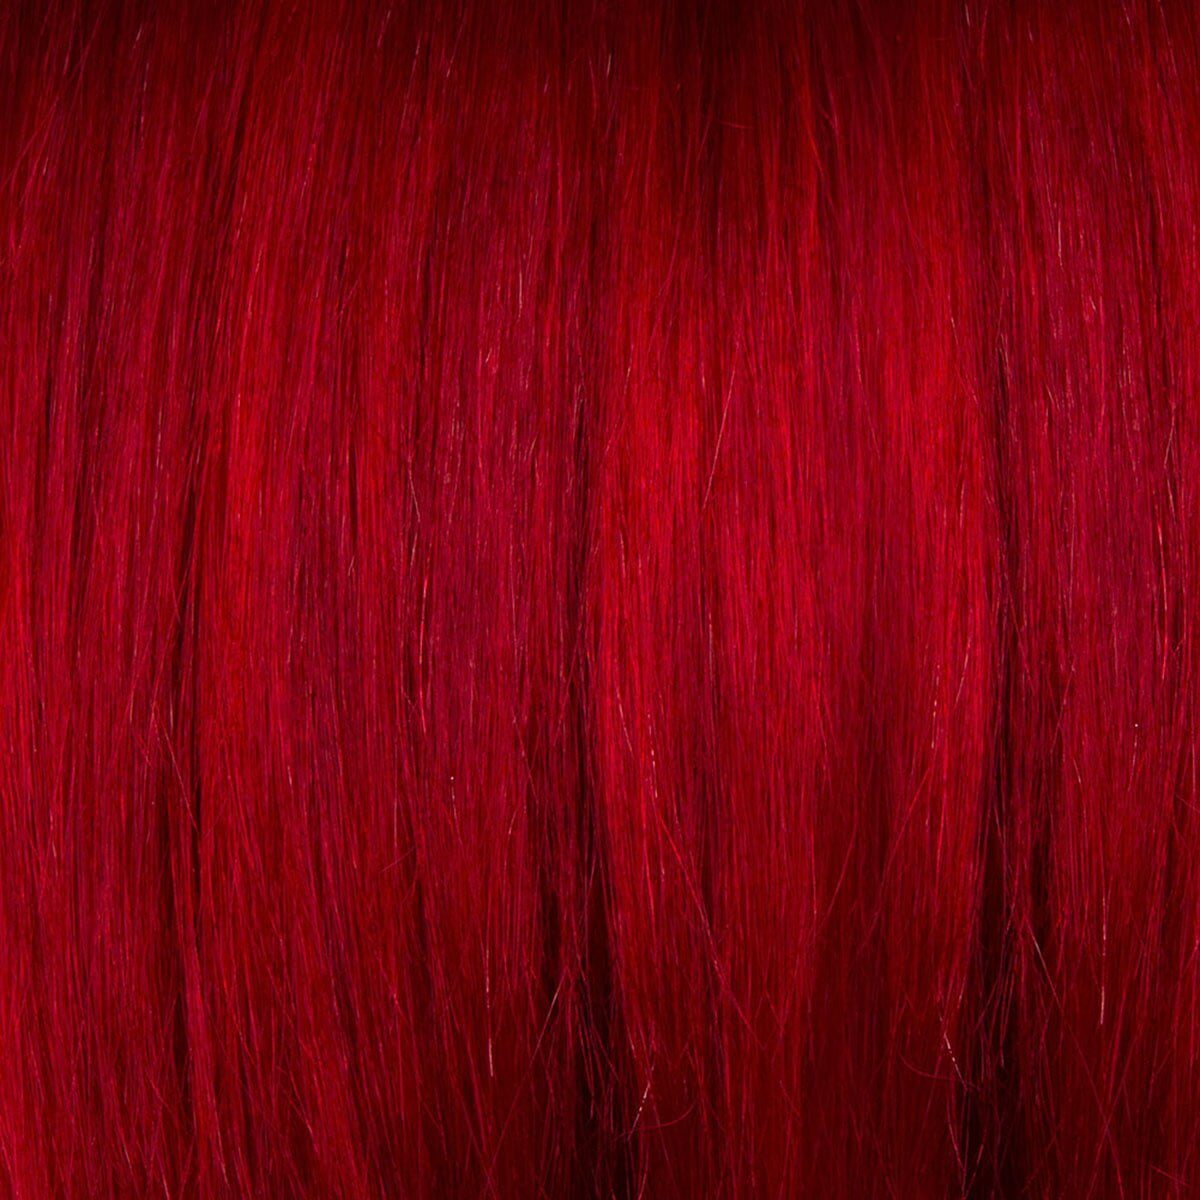 manic panic high voltage rød hårfarge 118 ml infra red classic swatch 70425